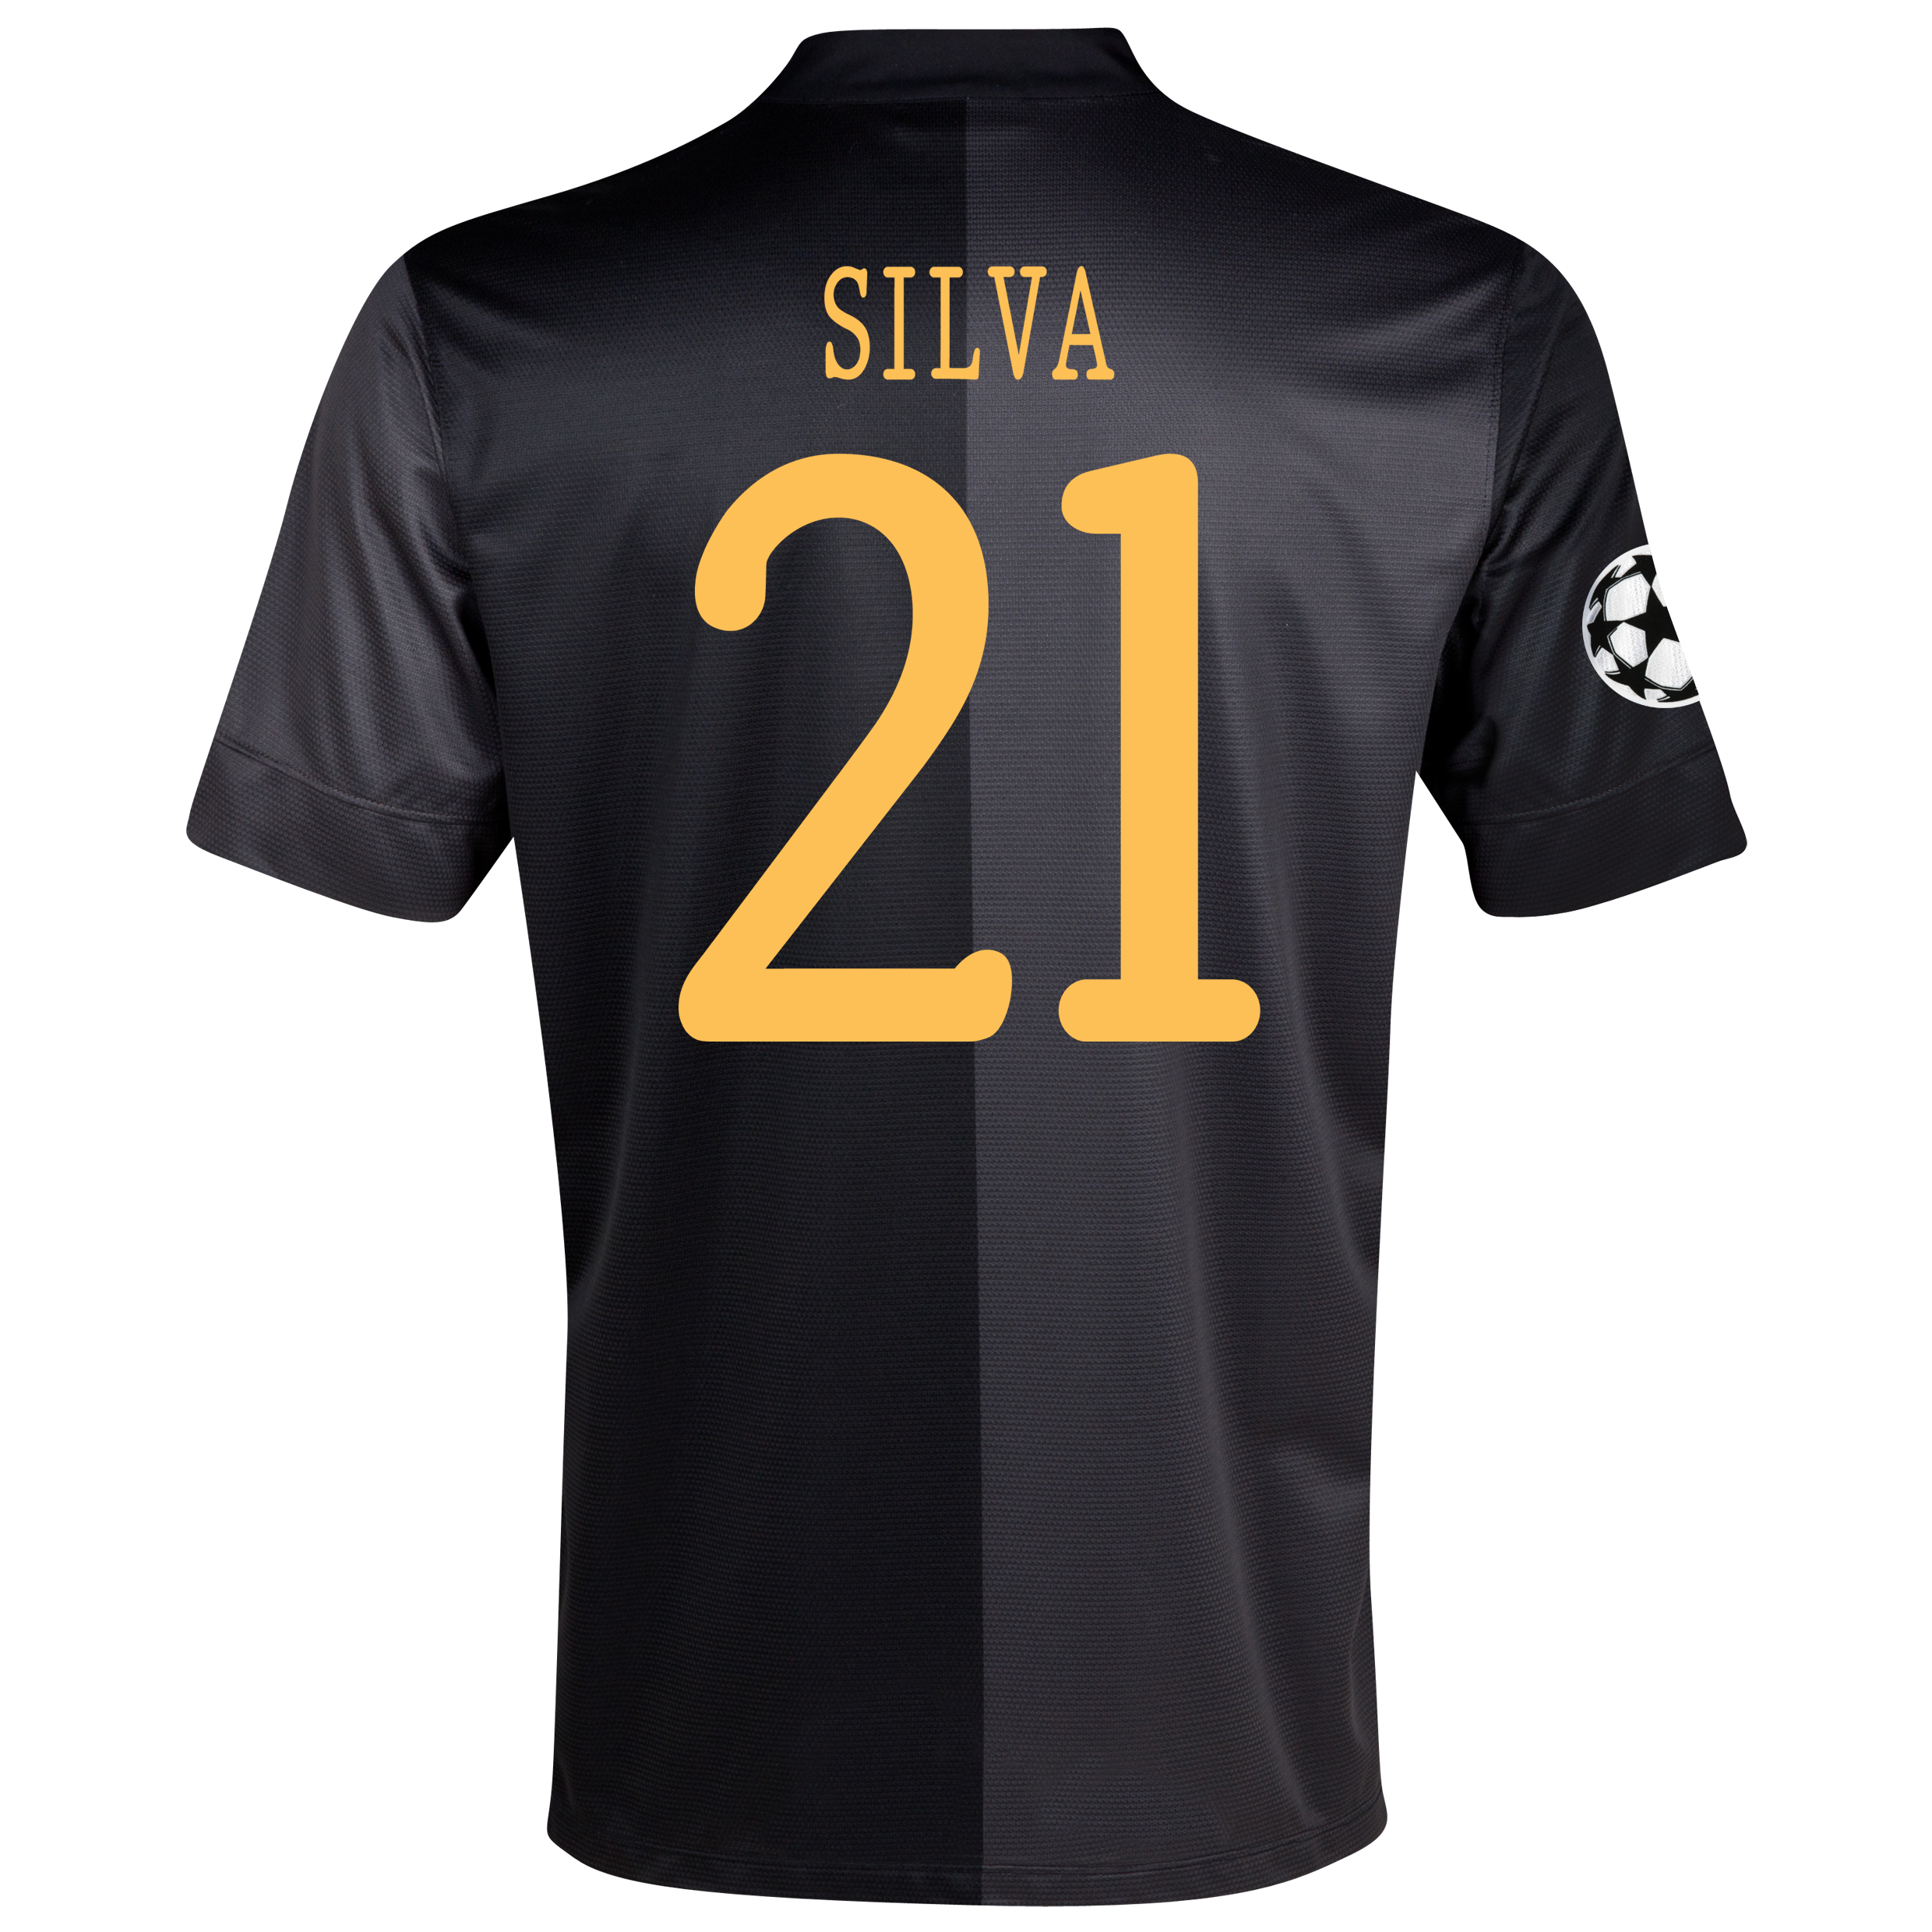 Manchester City UEFA Champions League Away Shirt 2013/14 with Silva 21 printing